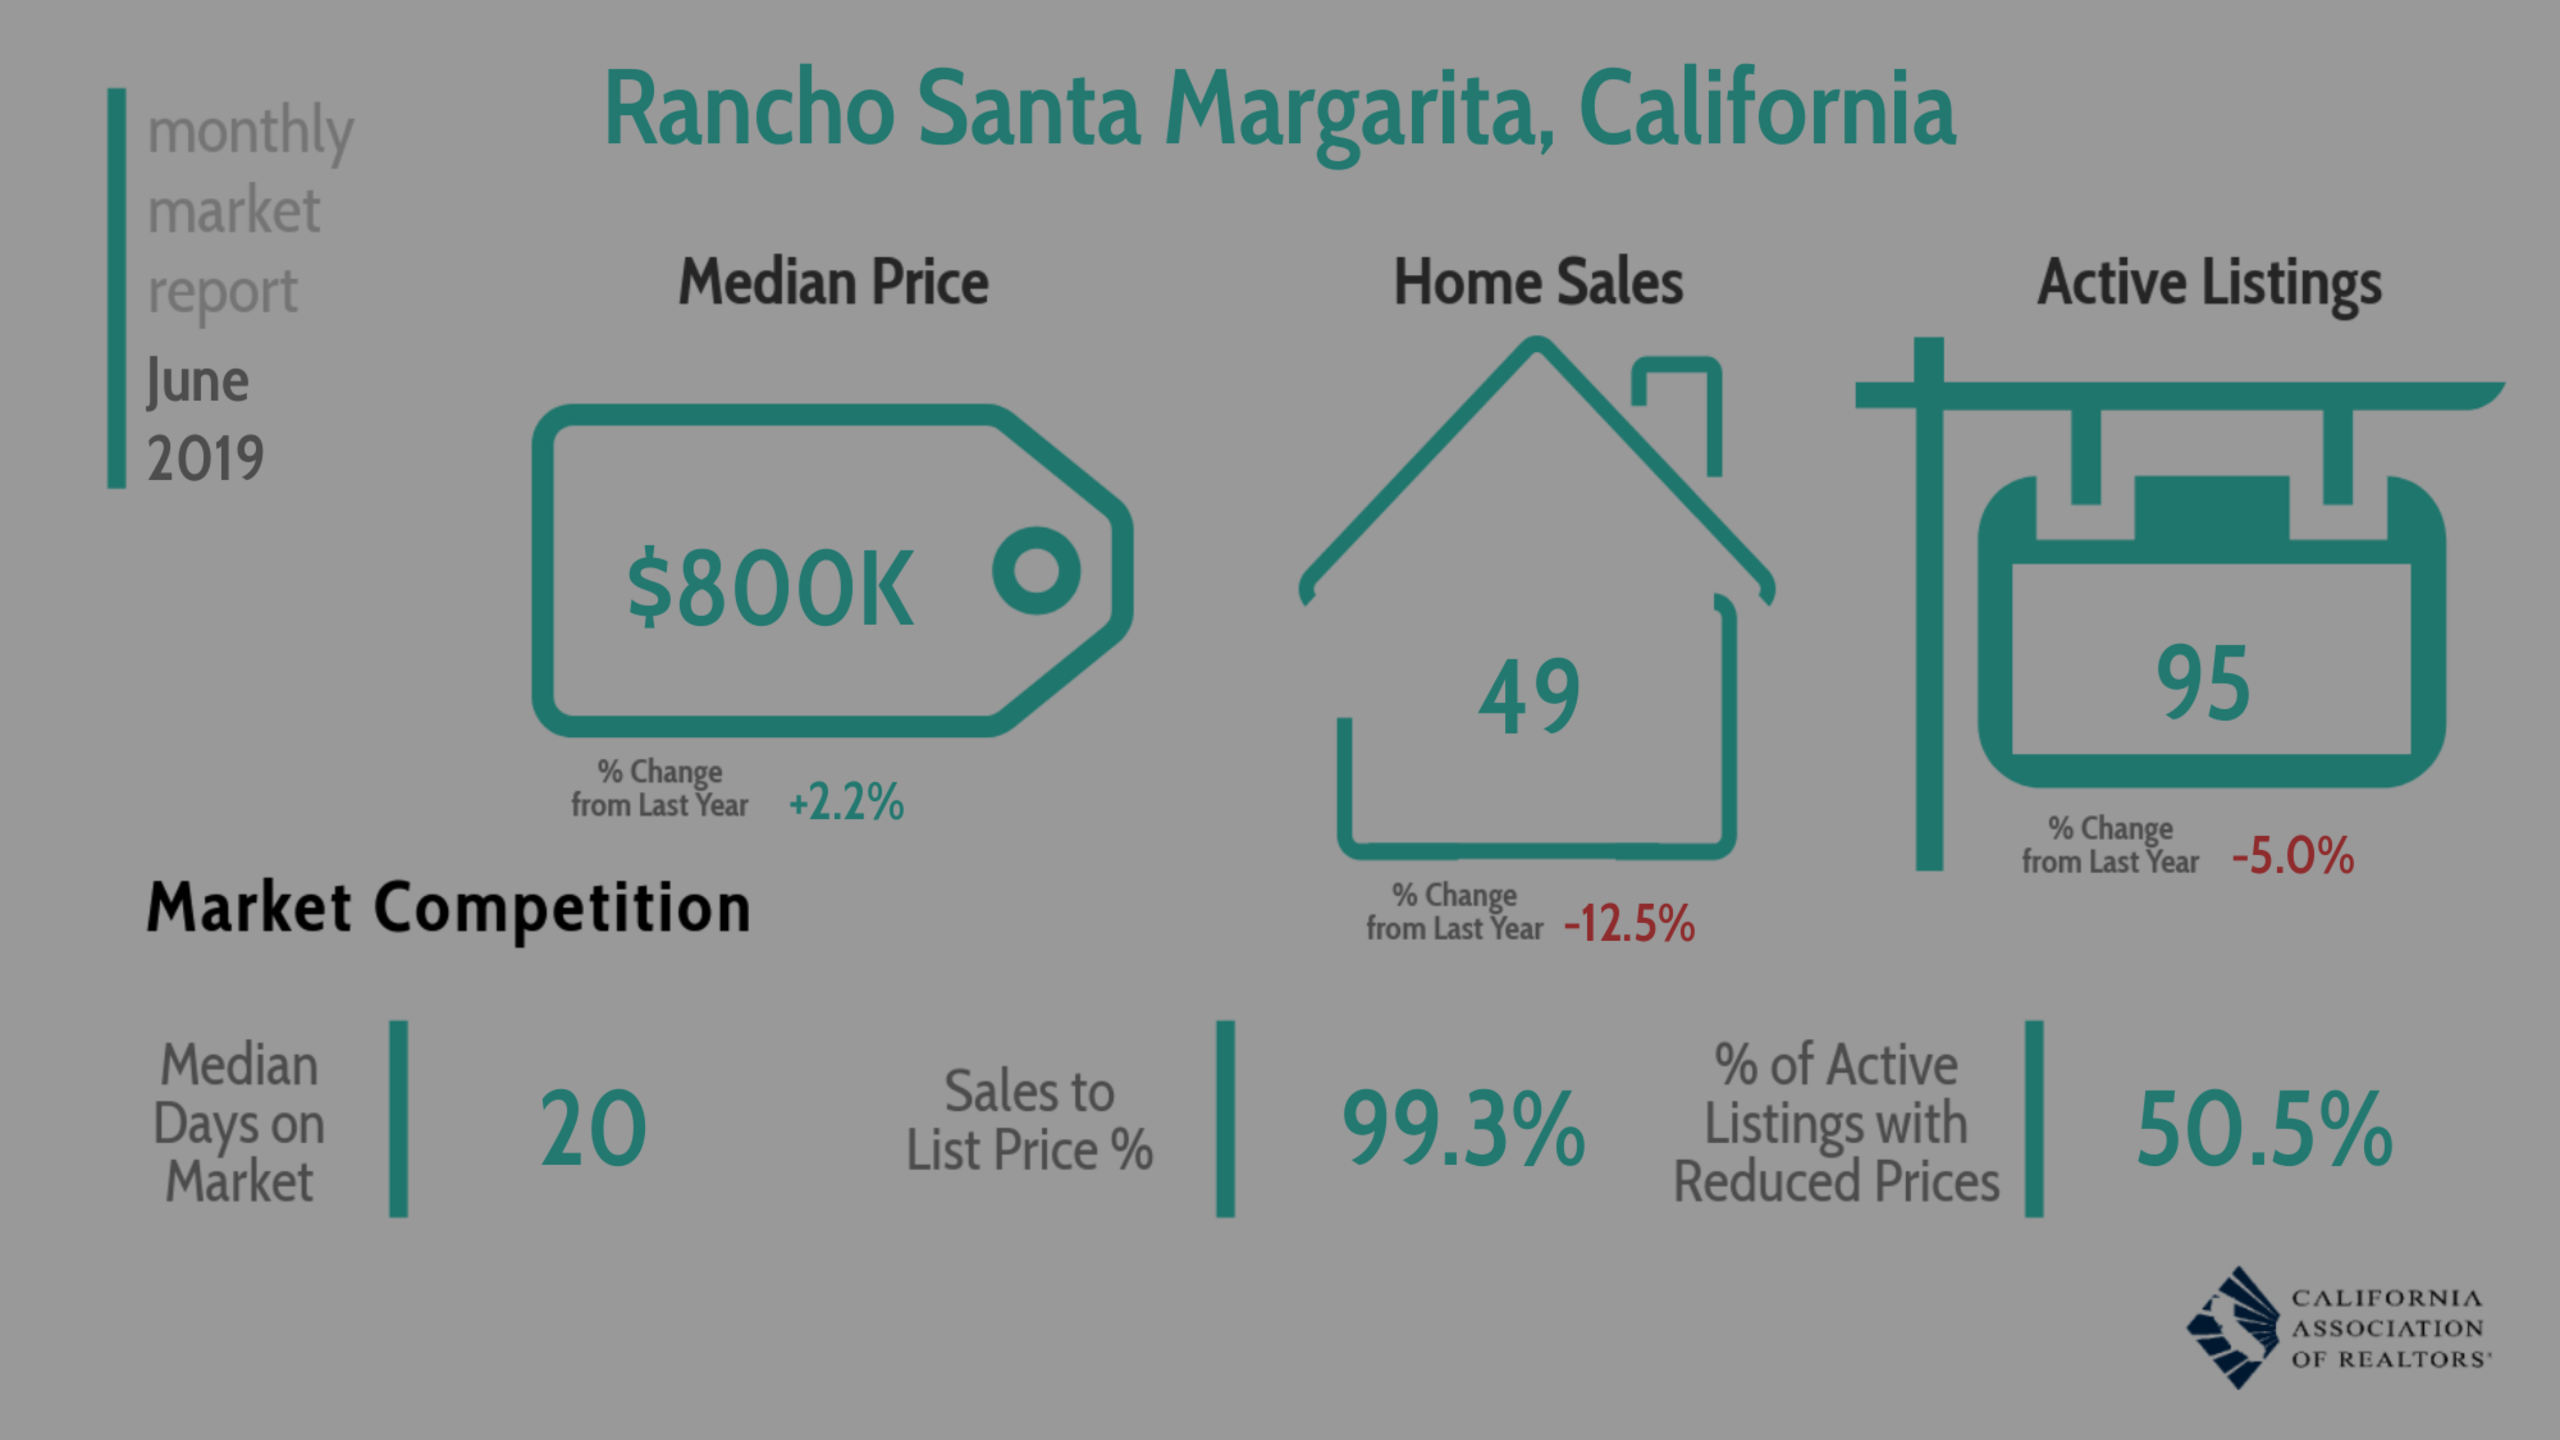 Monthly Market Report June 2019 – Rancho Santa Margarita